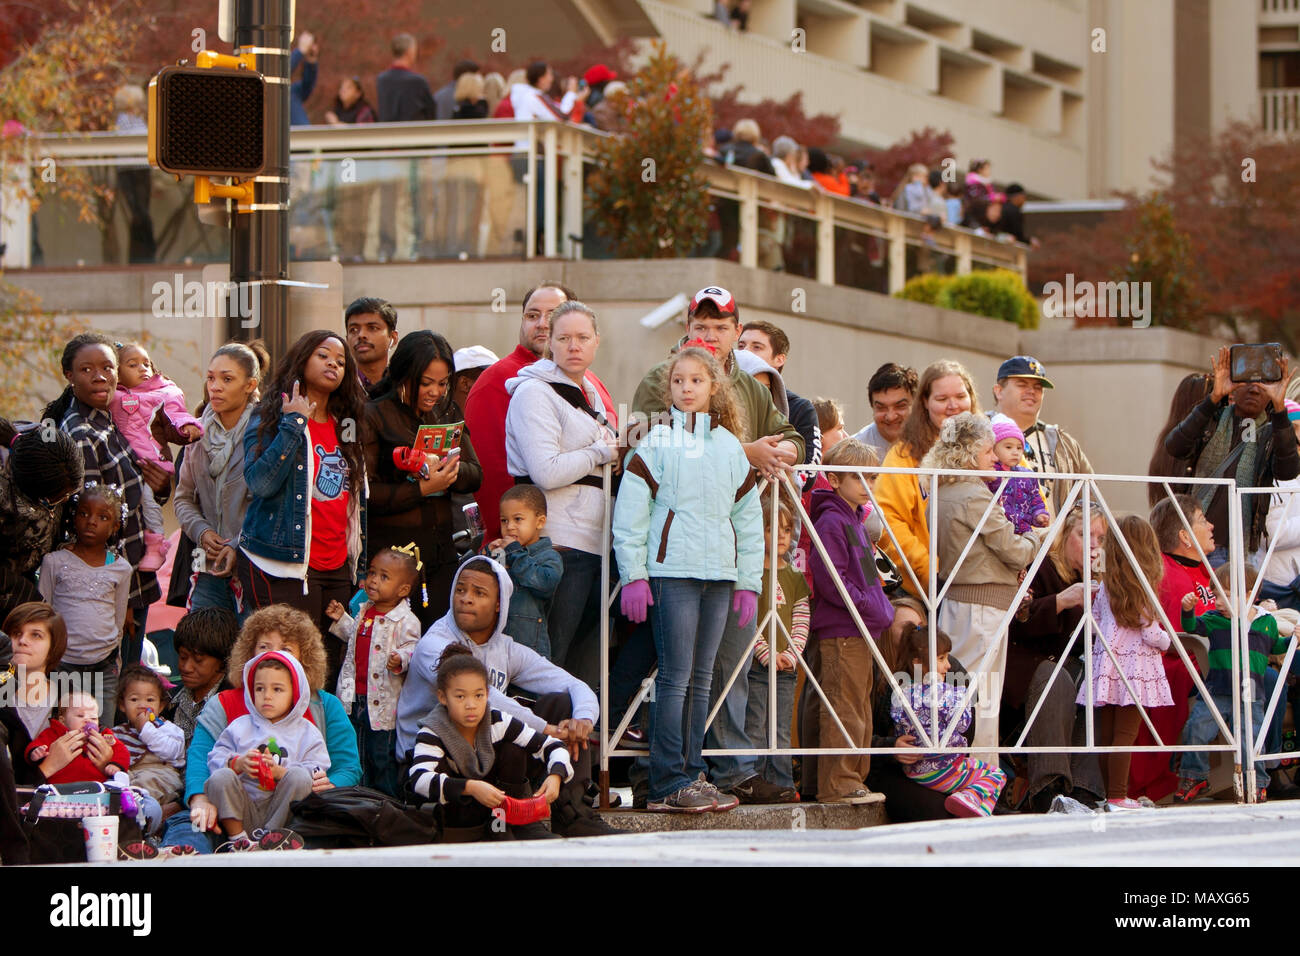 Tahlequah Christmas Parade 2021 Watching Parade High Resolution Stock Photography And Images Alamy